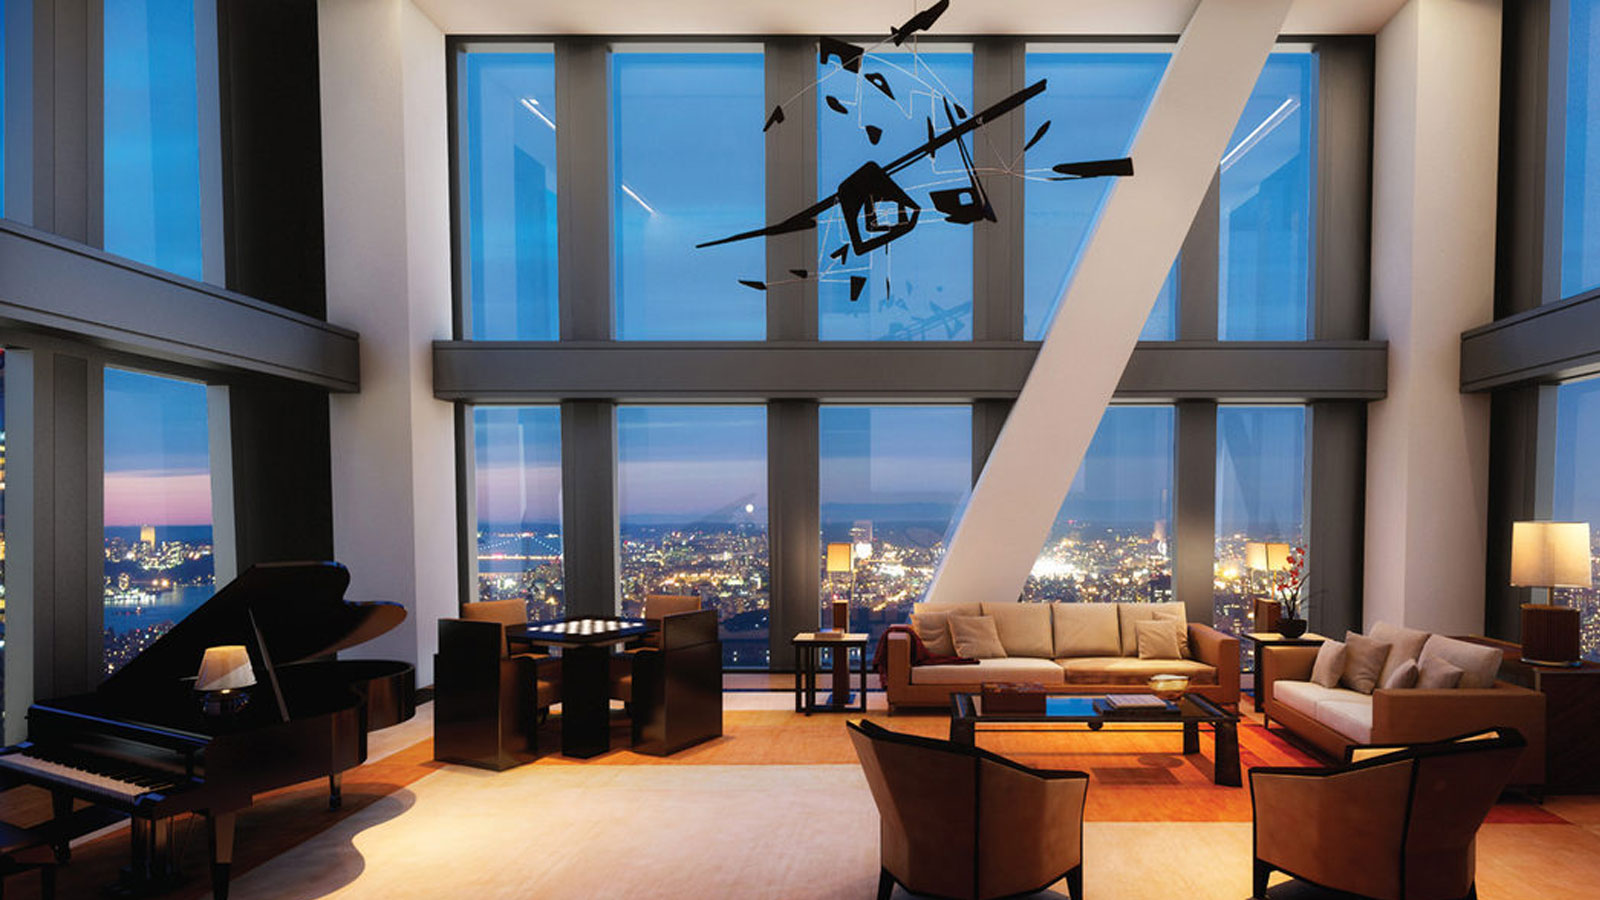 53w53 53 West 53rd Street Nyc Condo Apartments